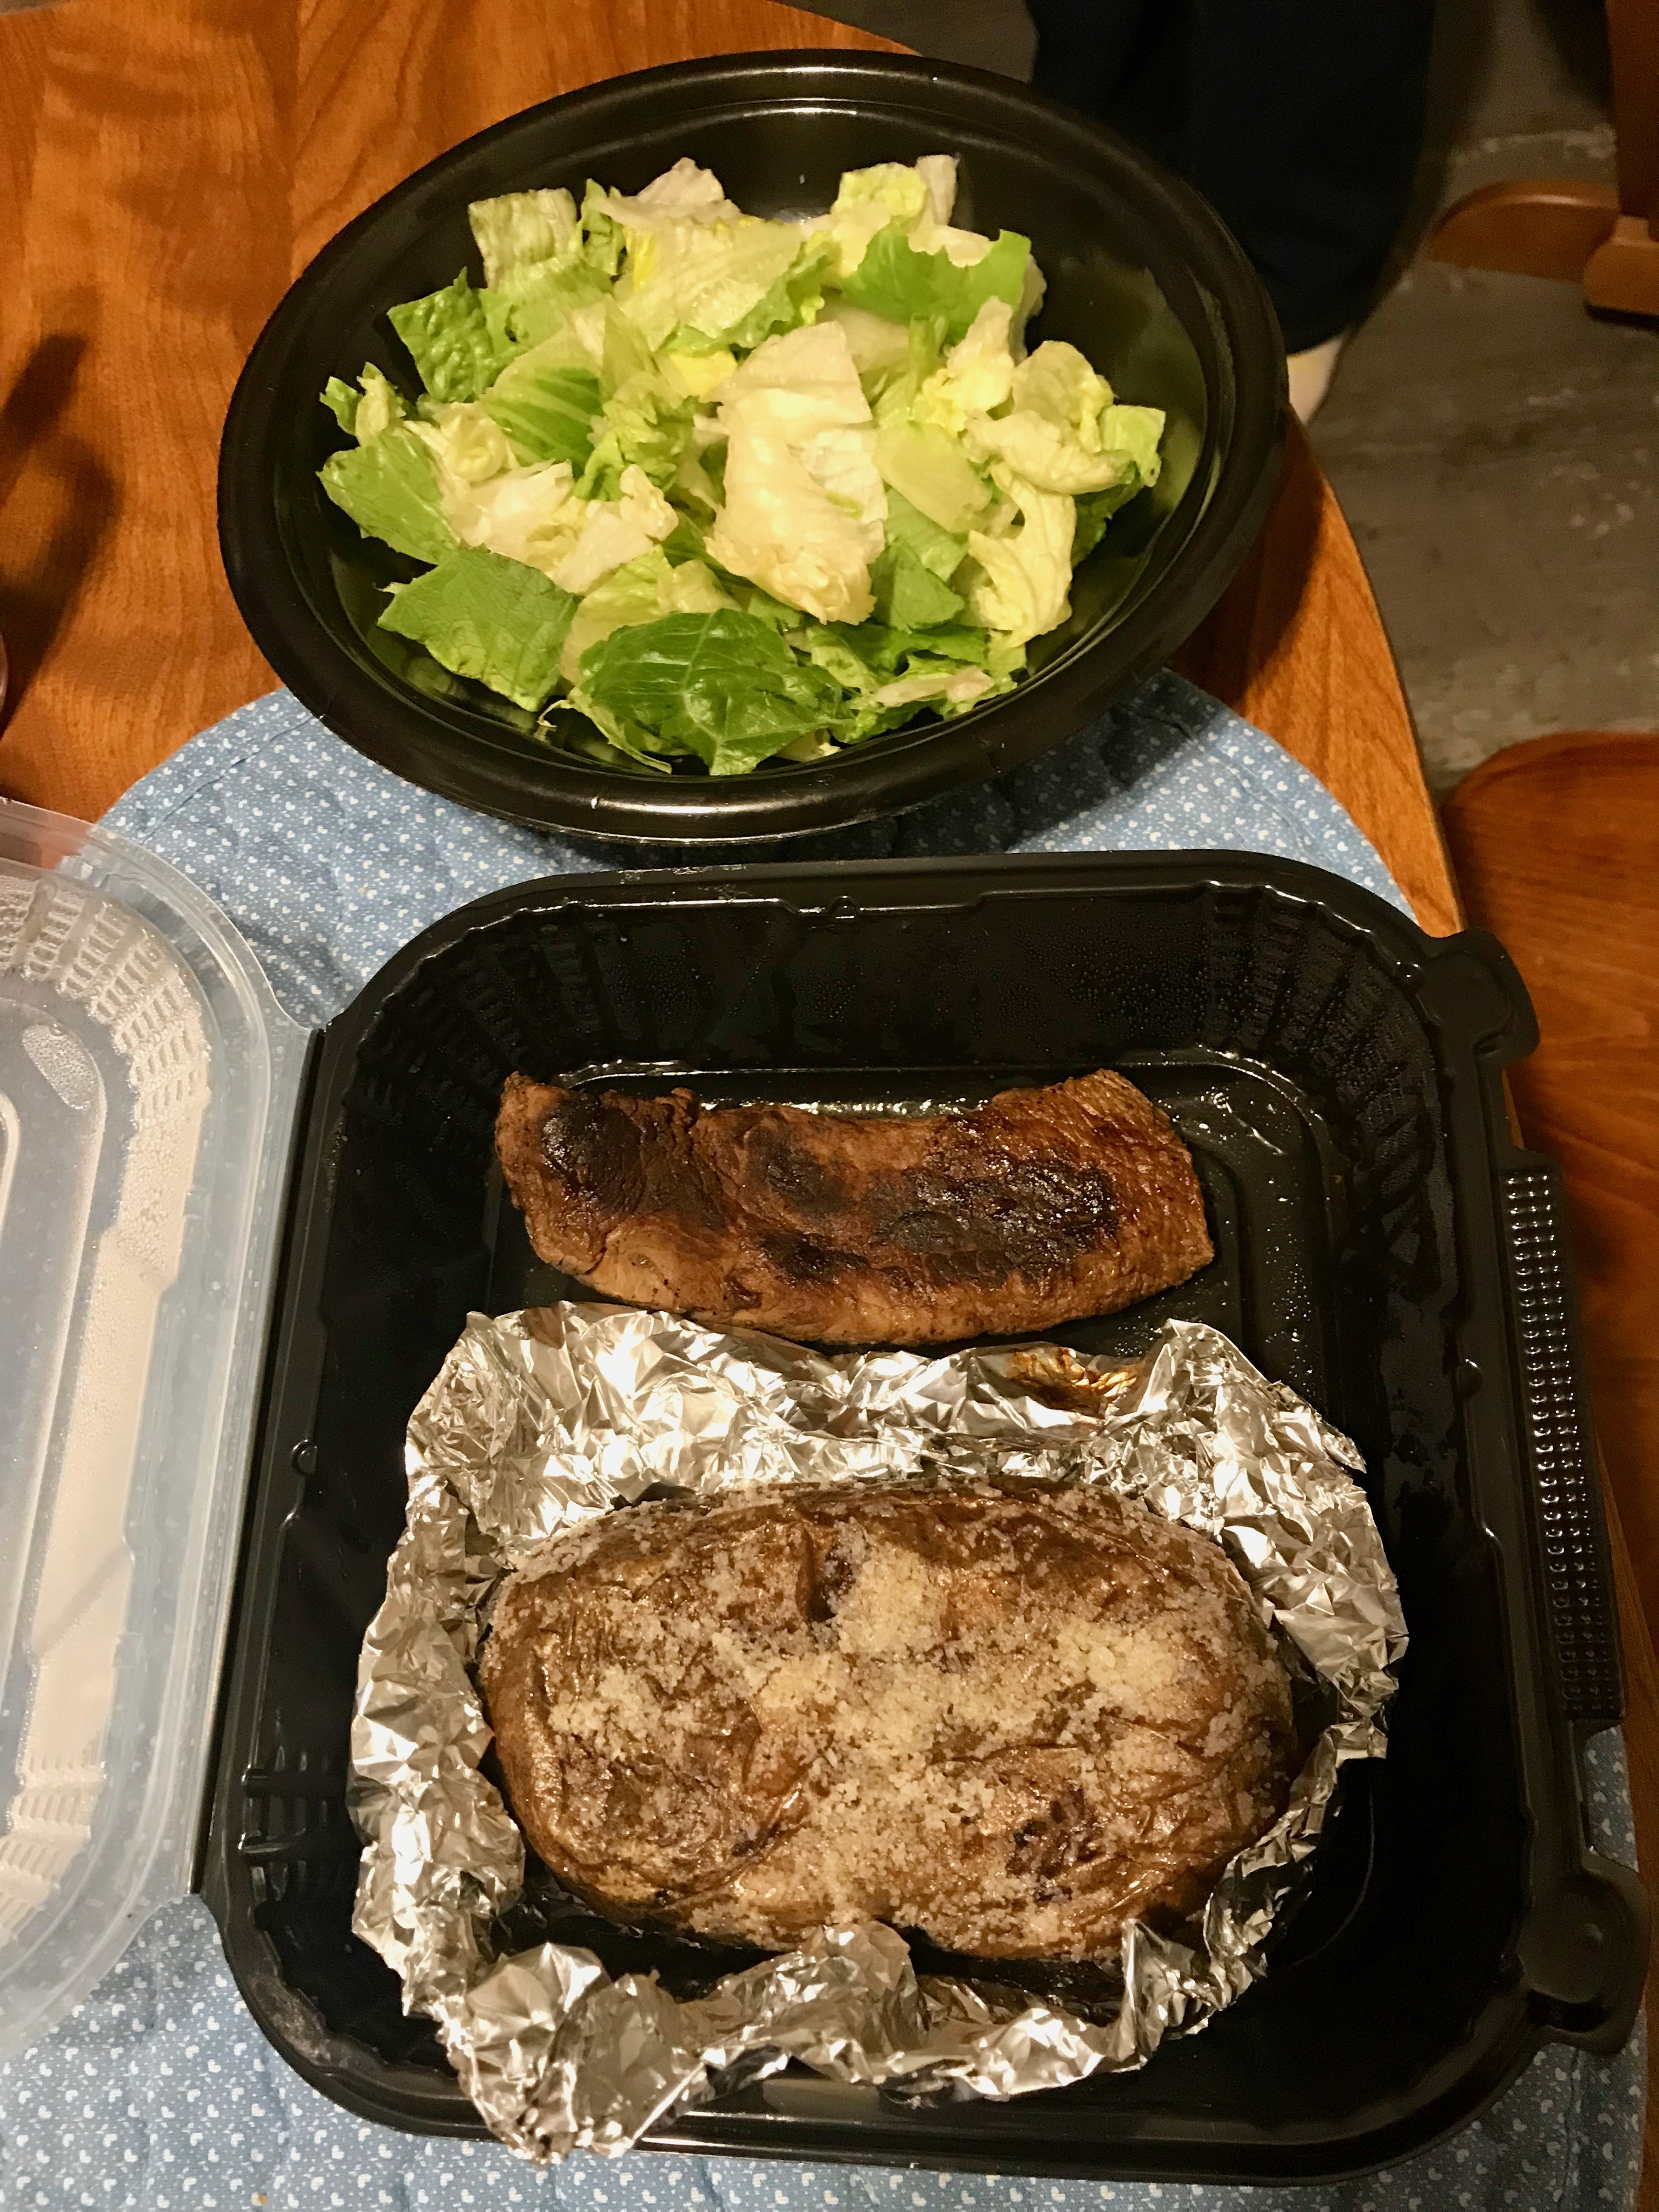 Outback steak, baked potato, & salad